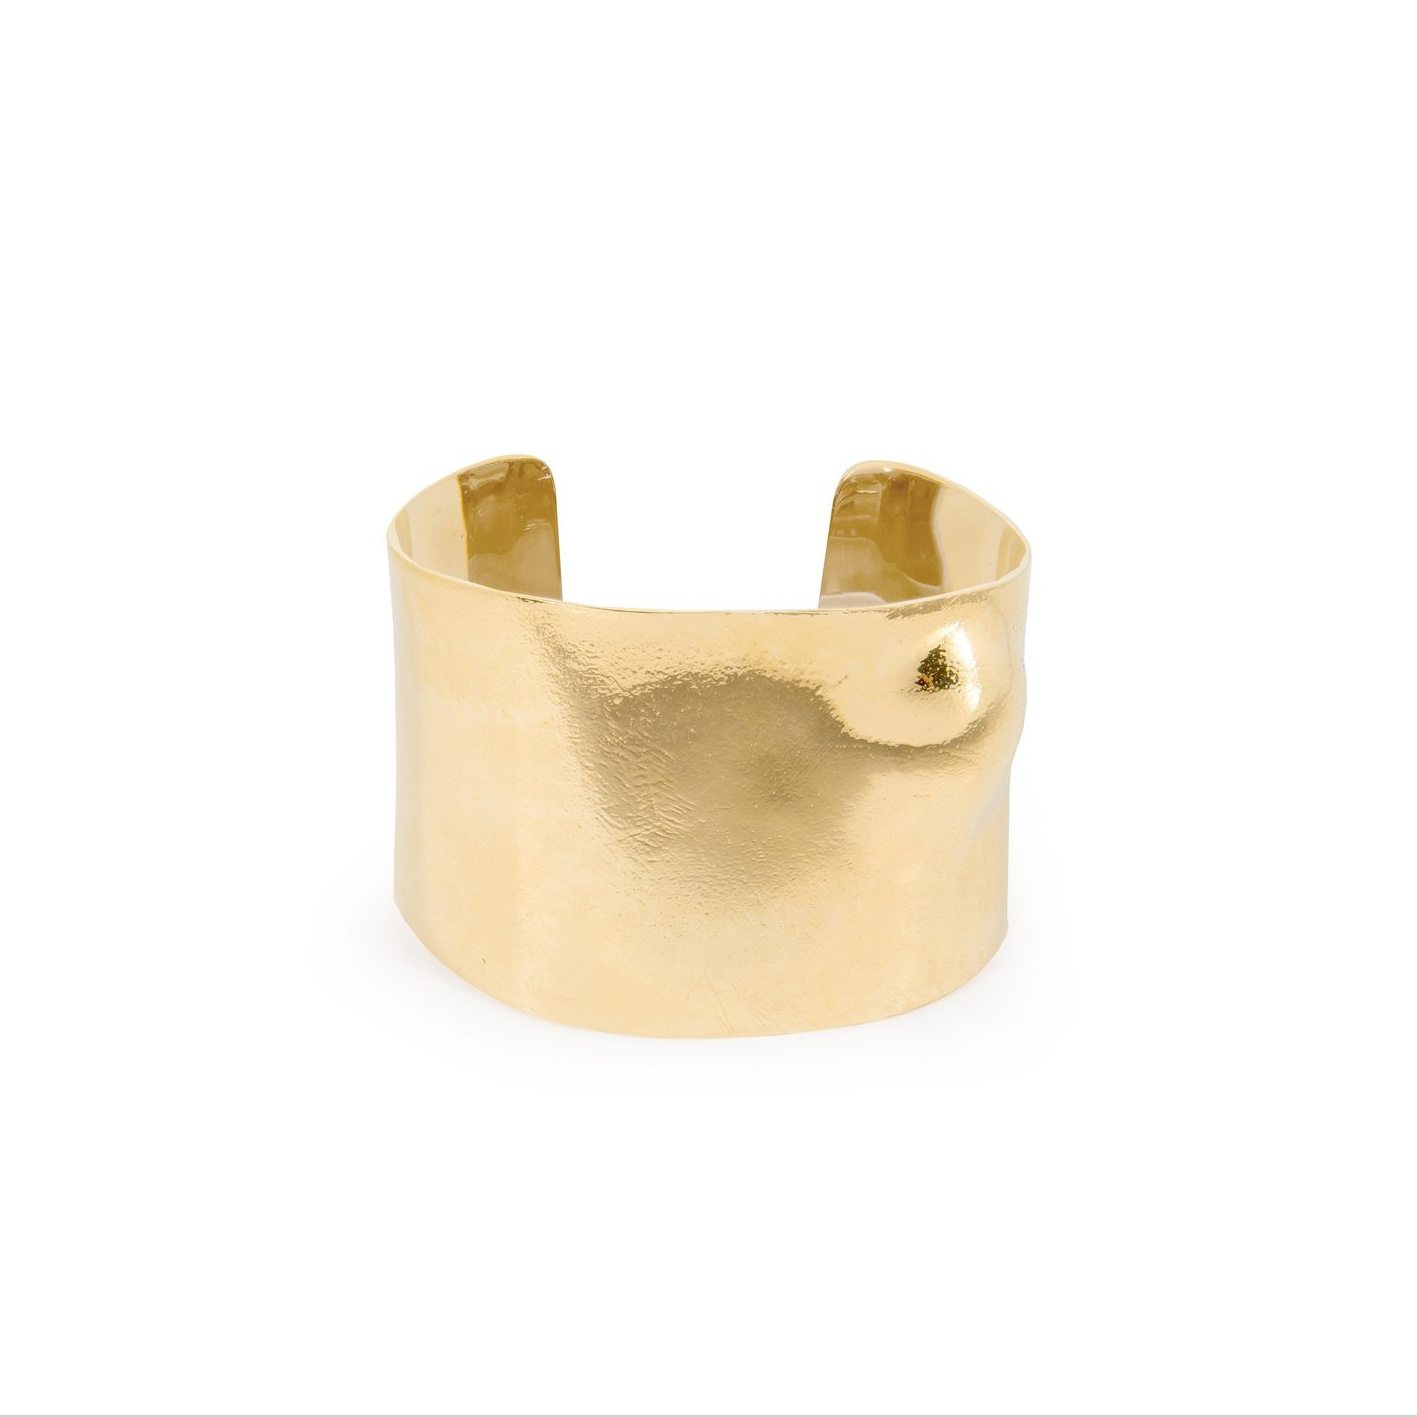 Embrace cuff Bracelet Goldplated